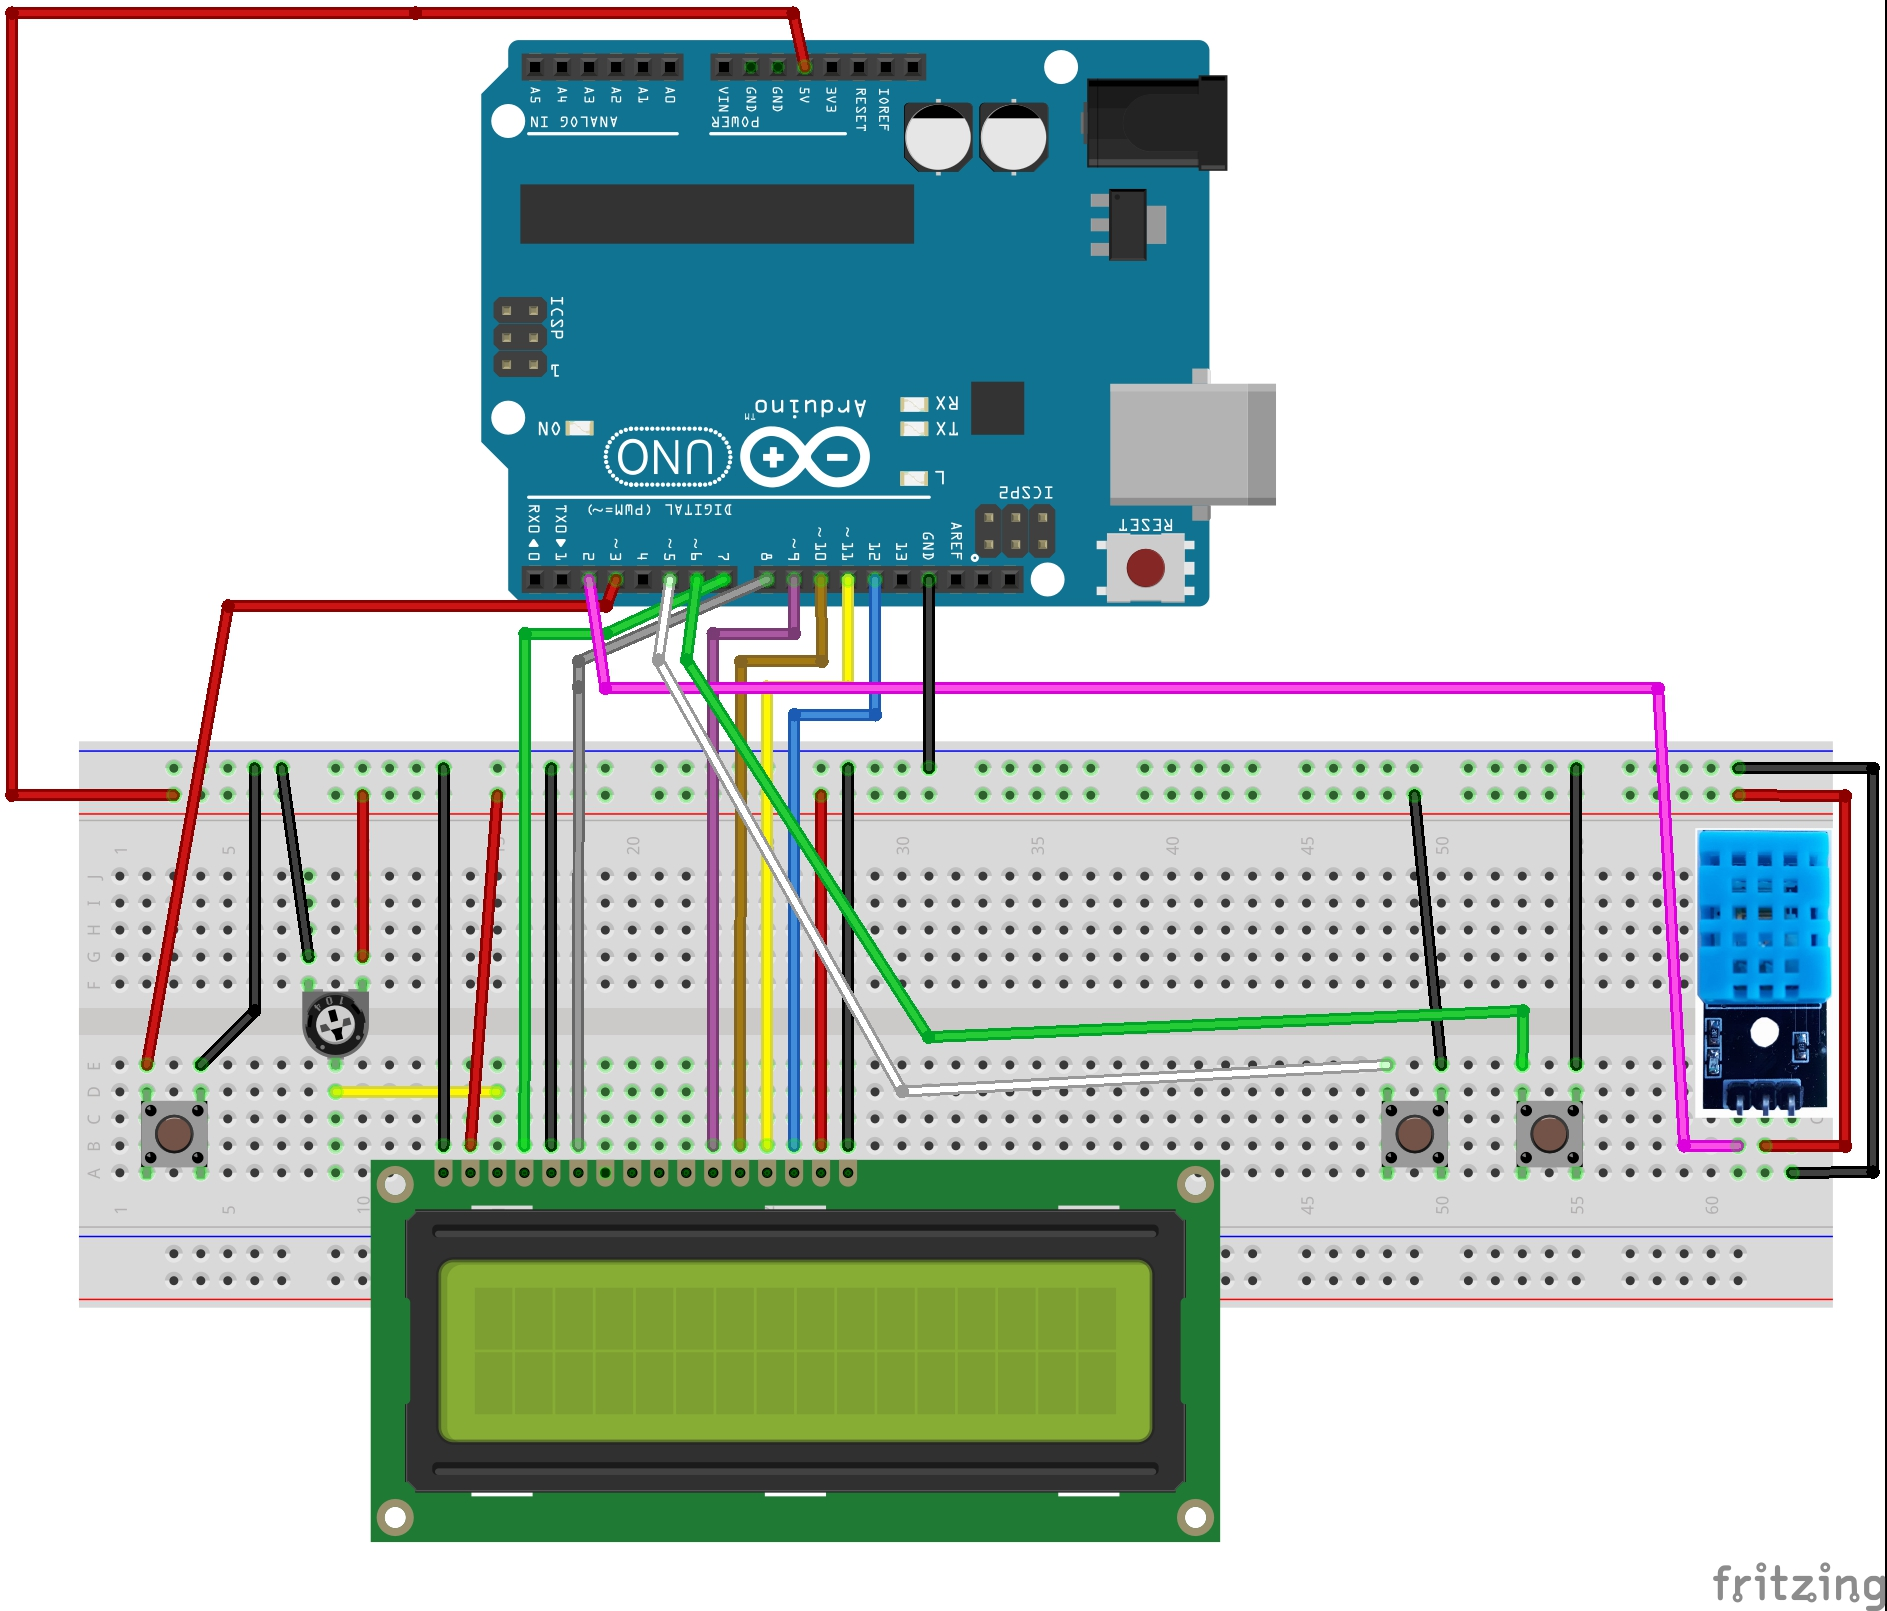 Arduino Lcd Projects Without Potentiometer How To Build A Custom Wiringpi Tutorial Clock Using Rtc In With Temperature And Humi